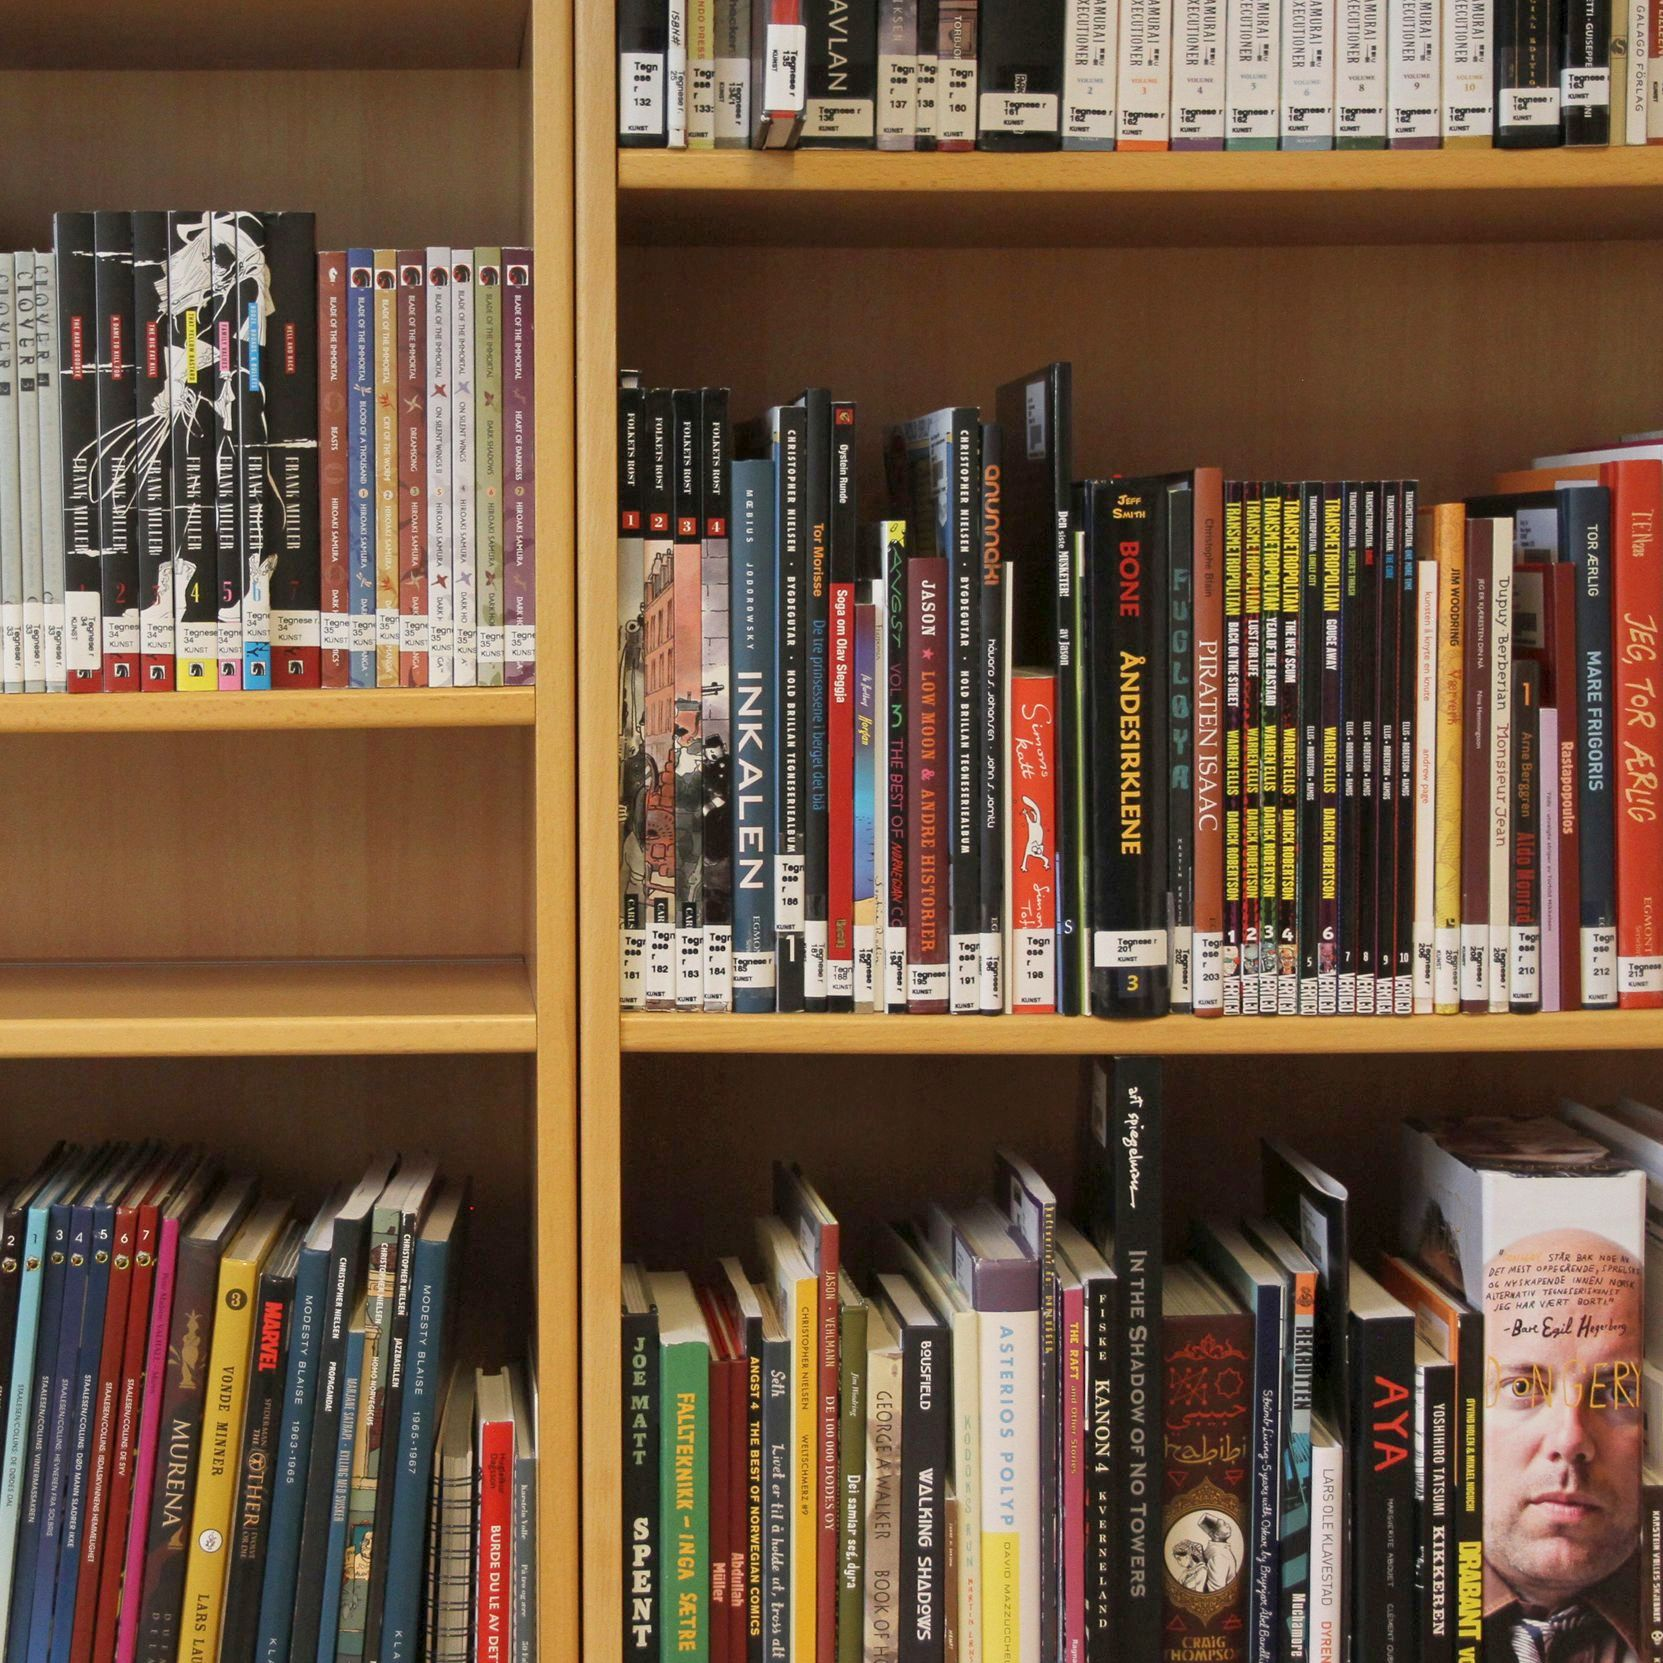 Graphic novels, art library